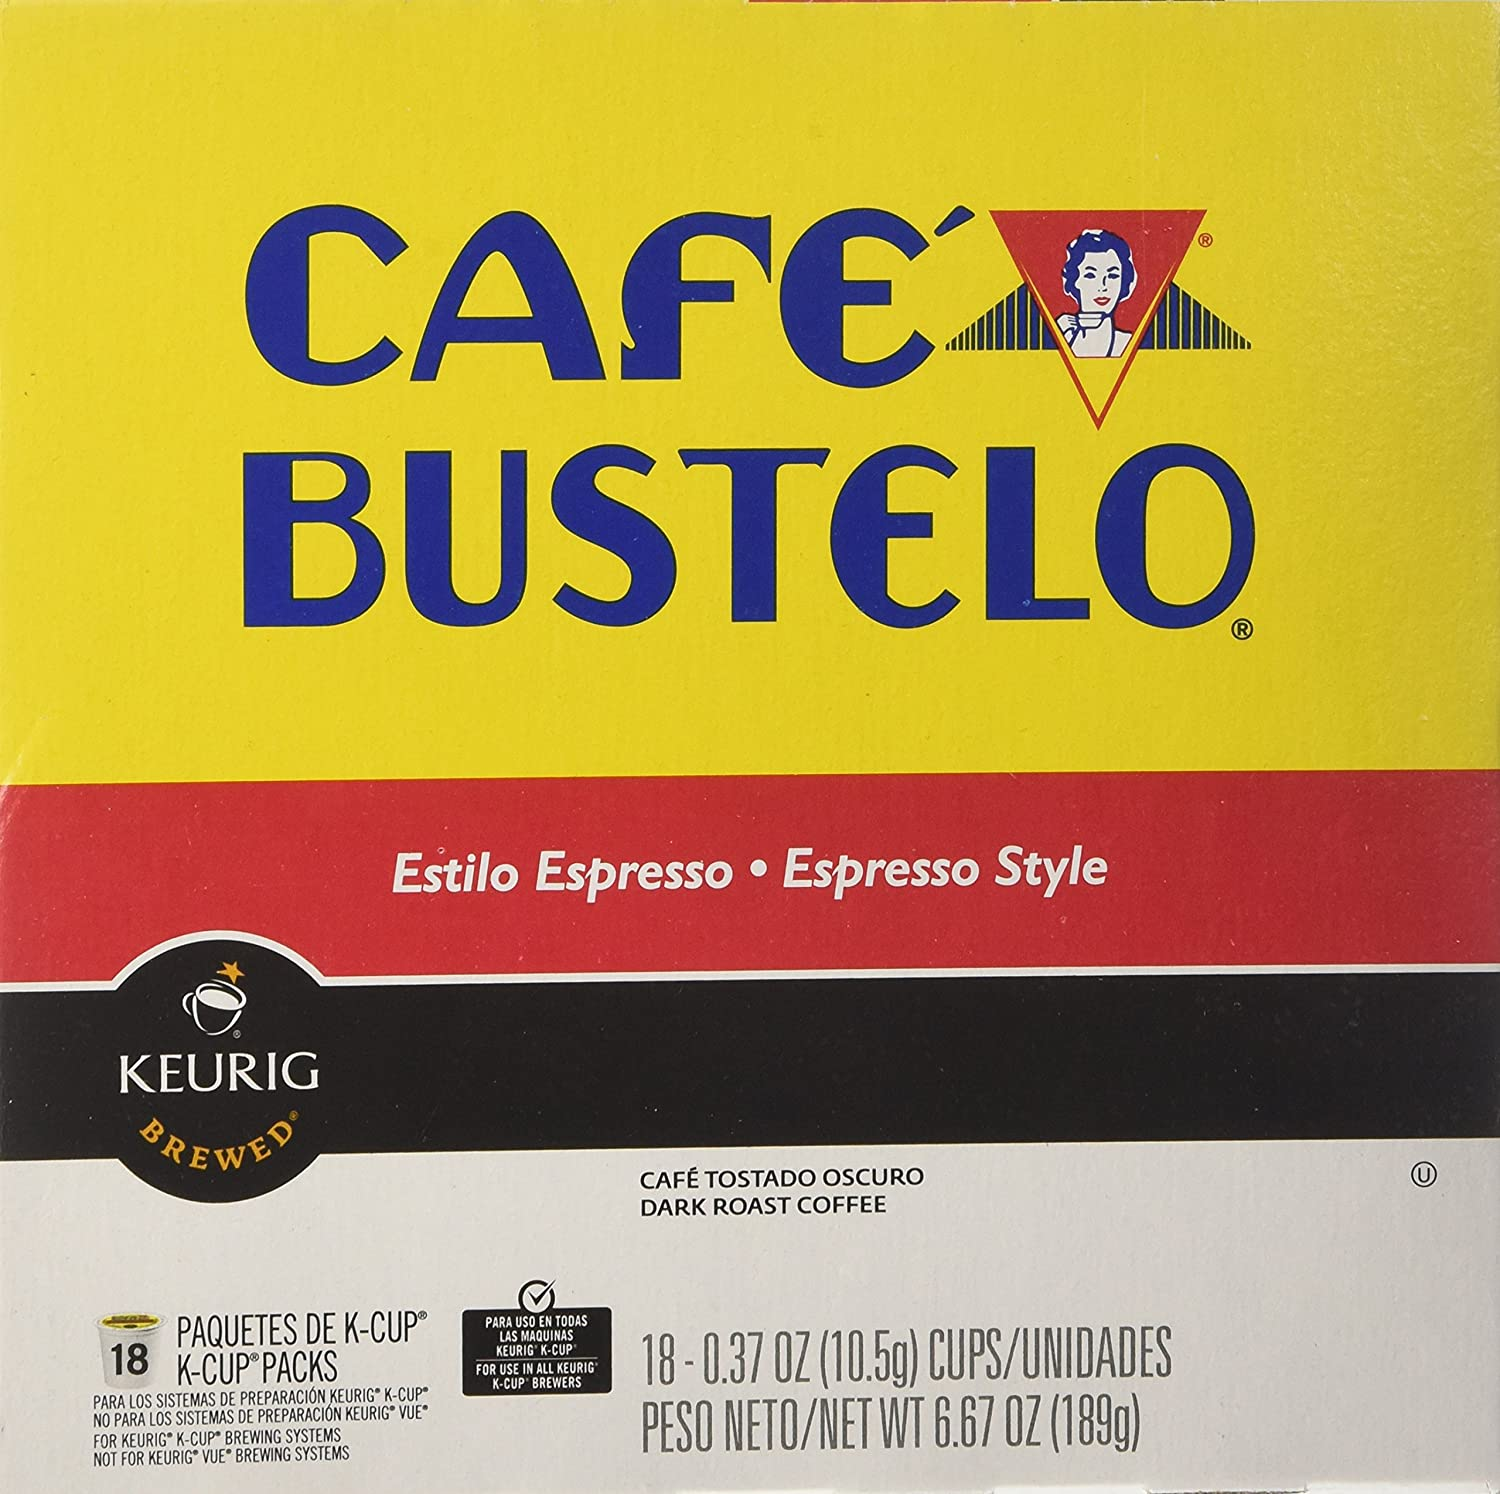 keurig cafe bustelo coffee espresso k cups n 36 count keurig cafe bustelo coffee espresso k cups n 36 count amazon com grocery gourmet food